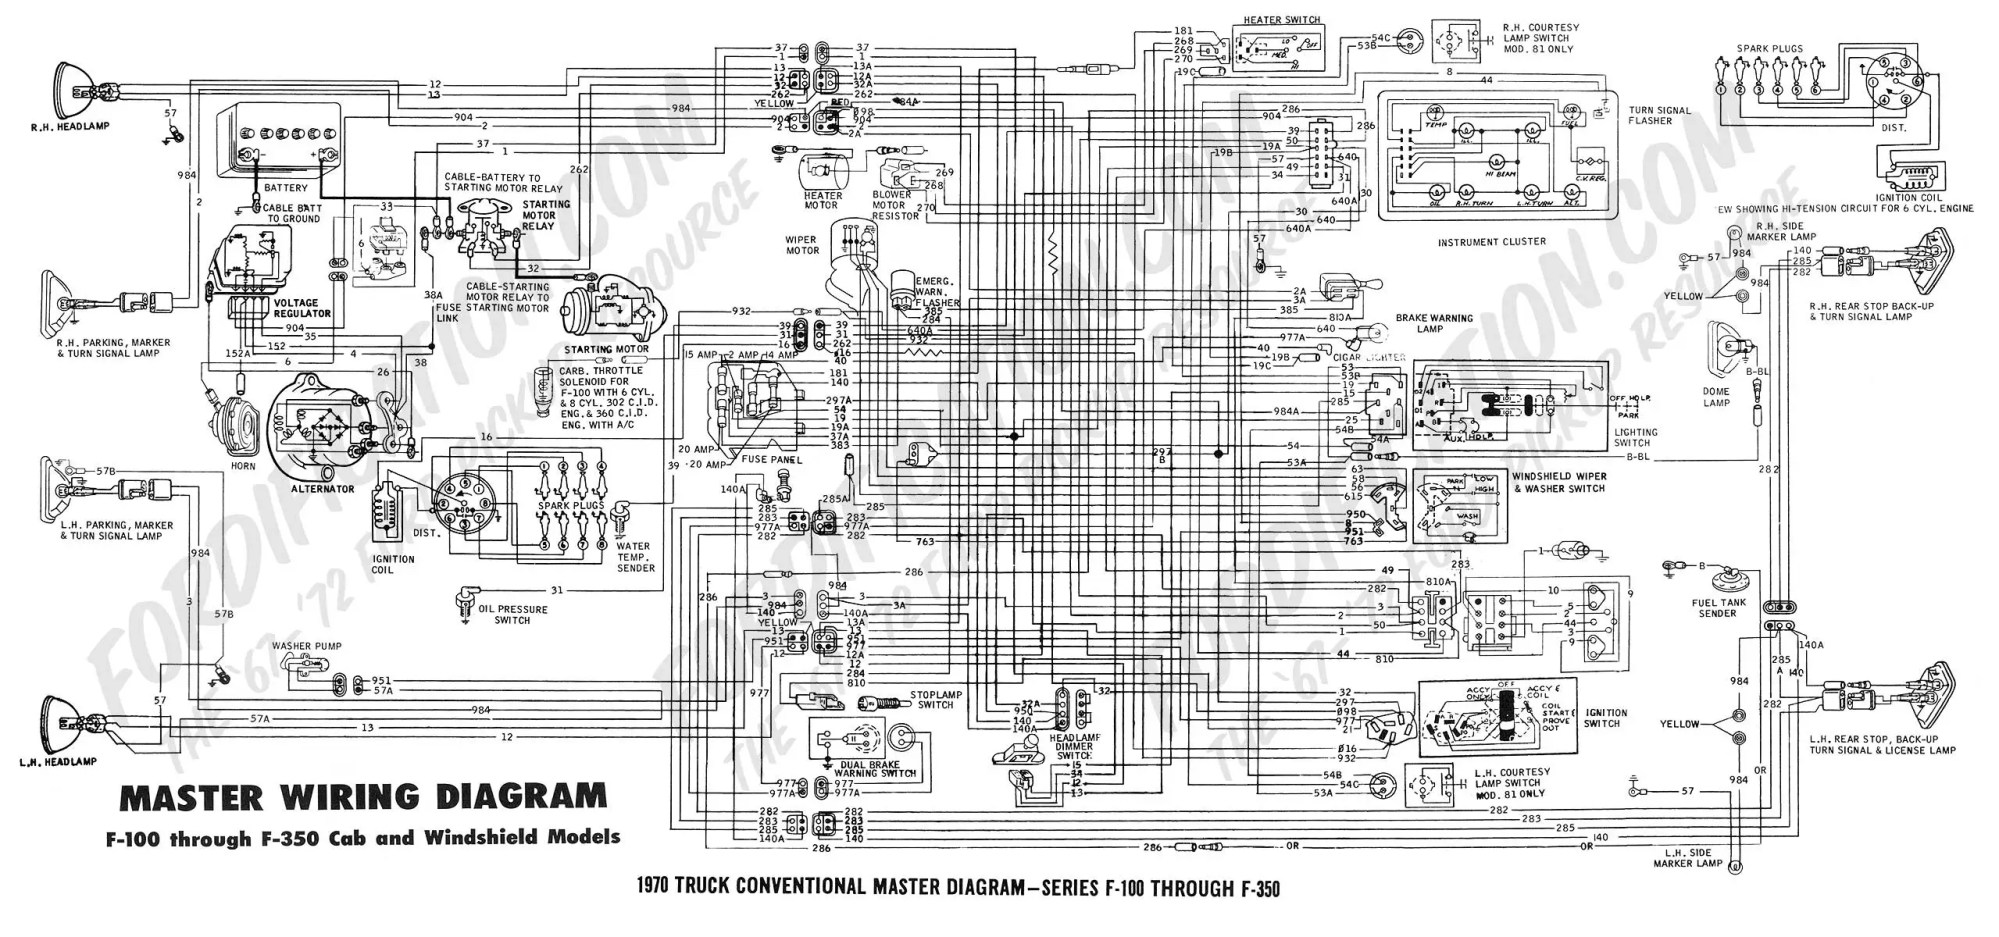 hight resolution of ford wiring schematic wiring diagram sheetford wiring schematics wiring diagram expert ford l9000 wiring schematic ford